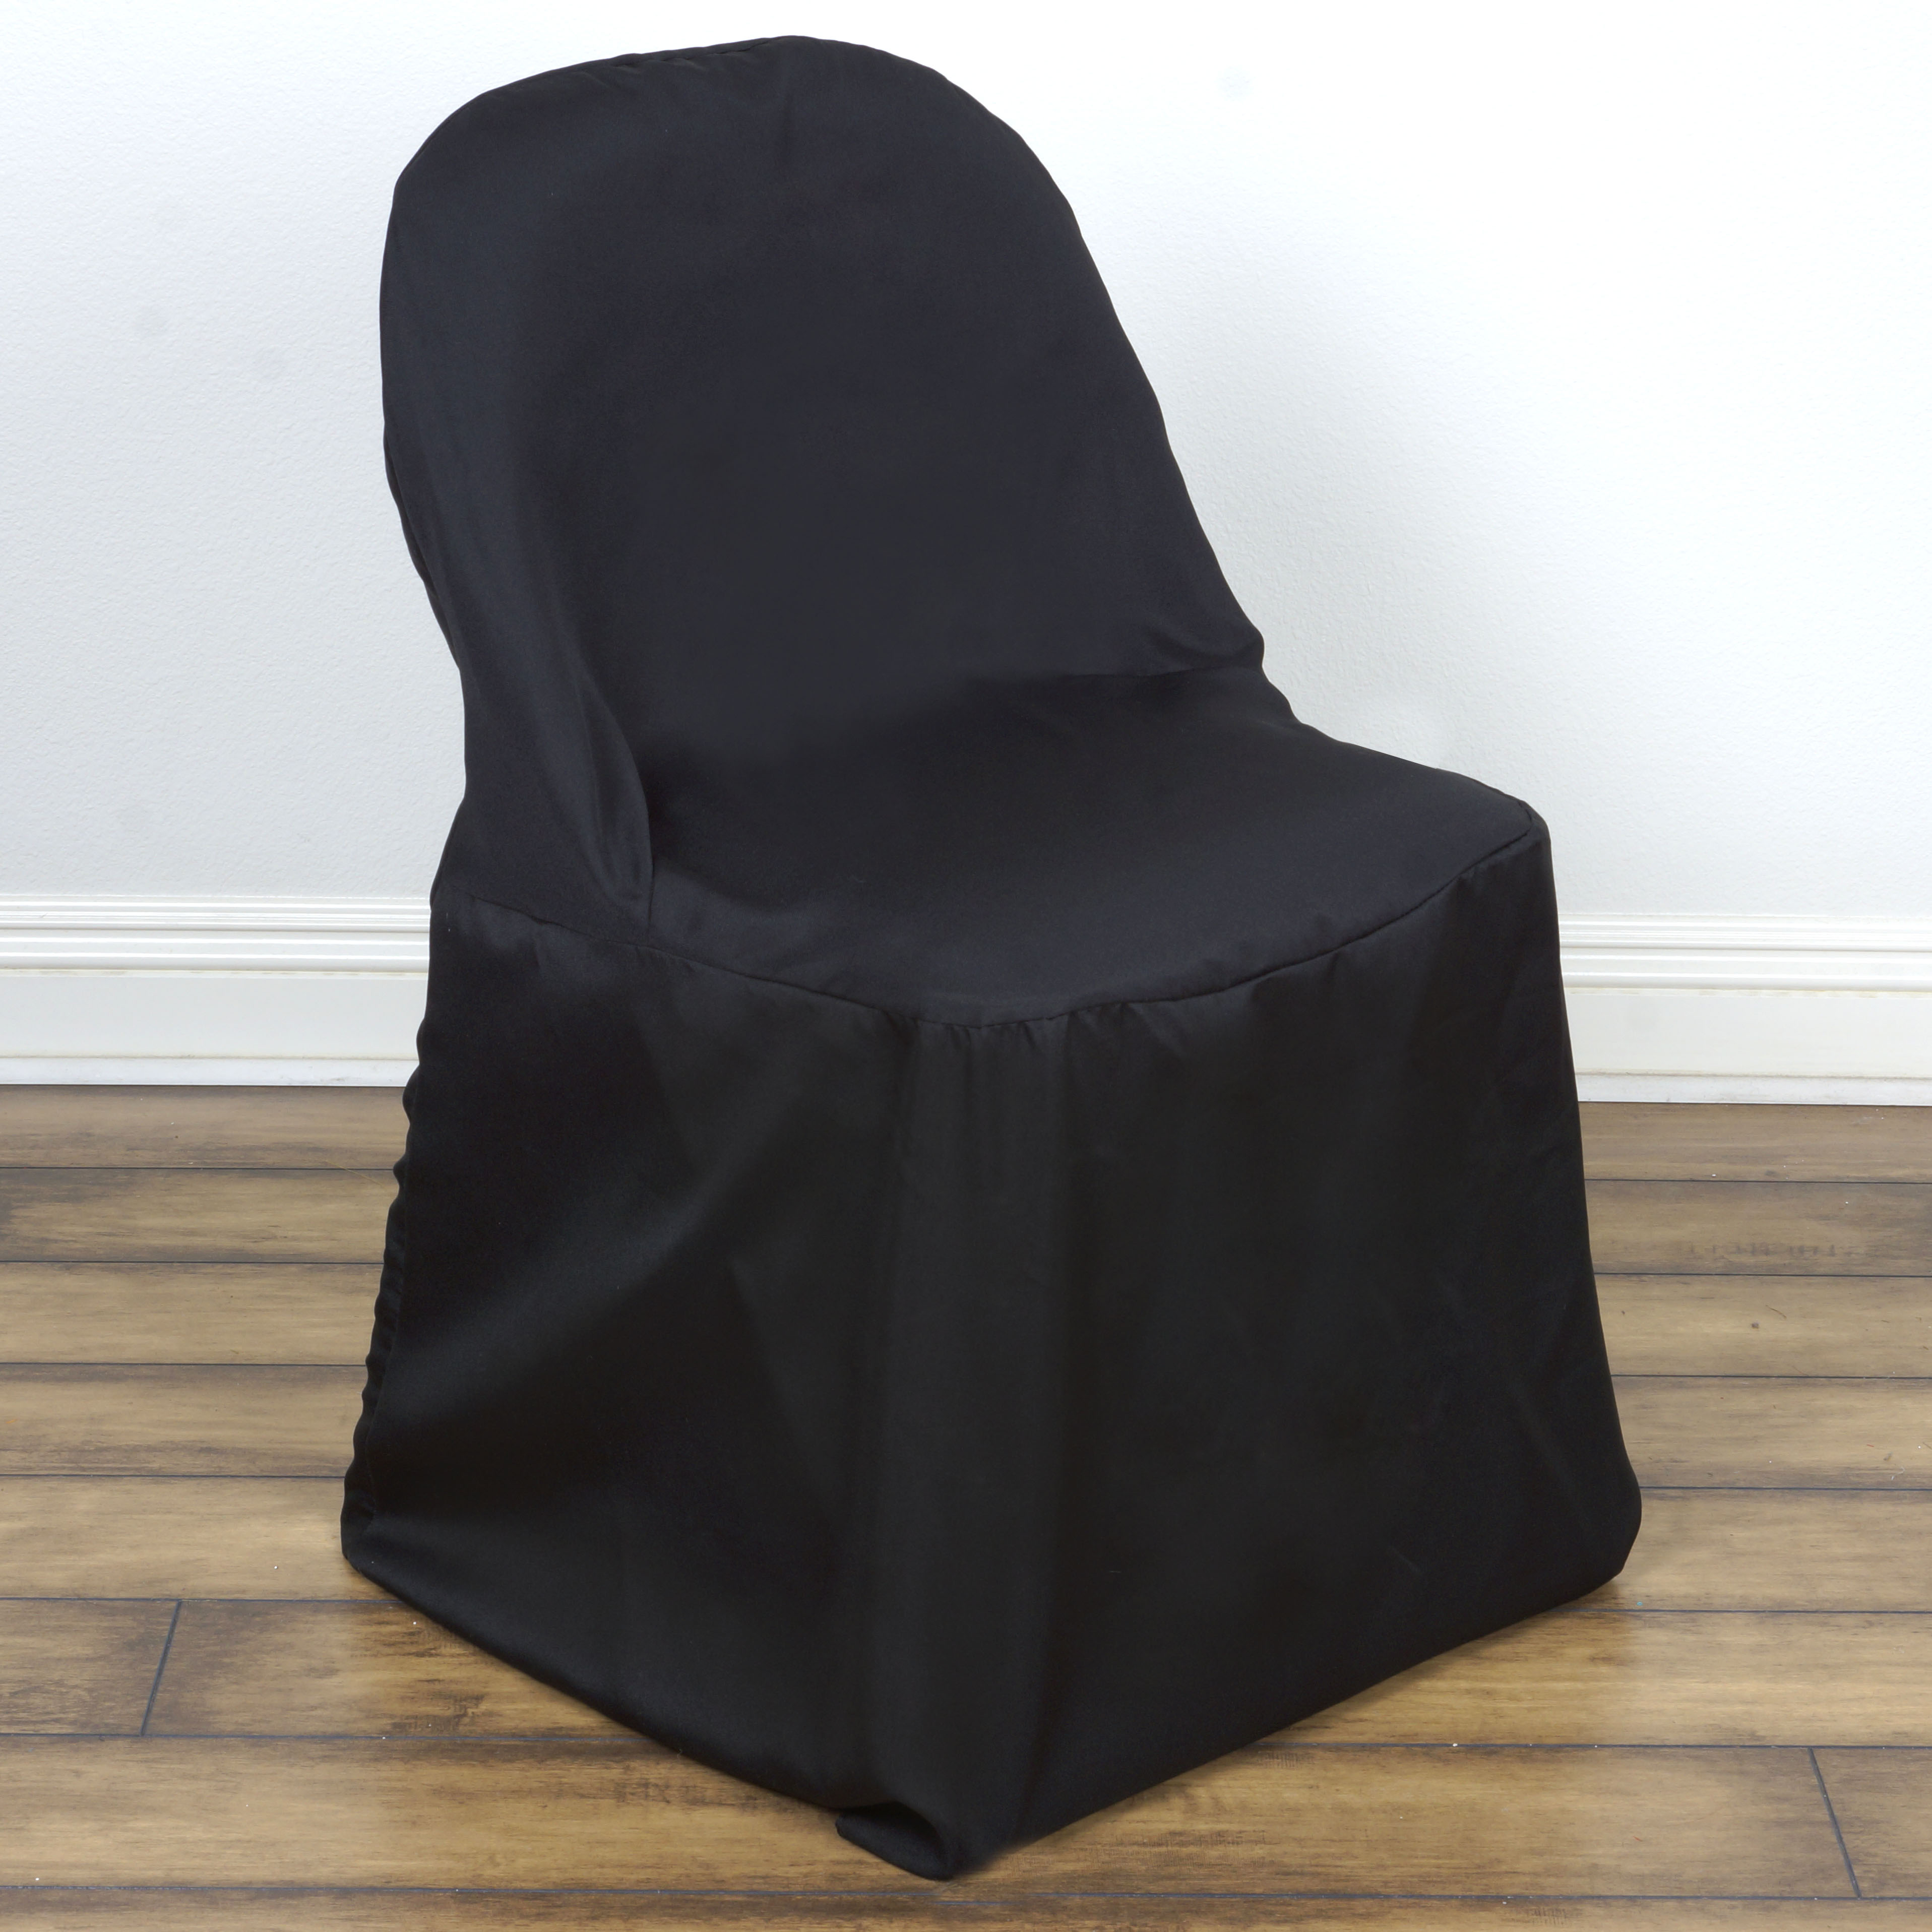 100 pcs POLYESTER ROUND FOLDING CHAIR COVERS Wholesale Discount